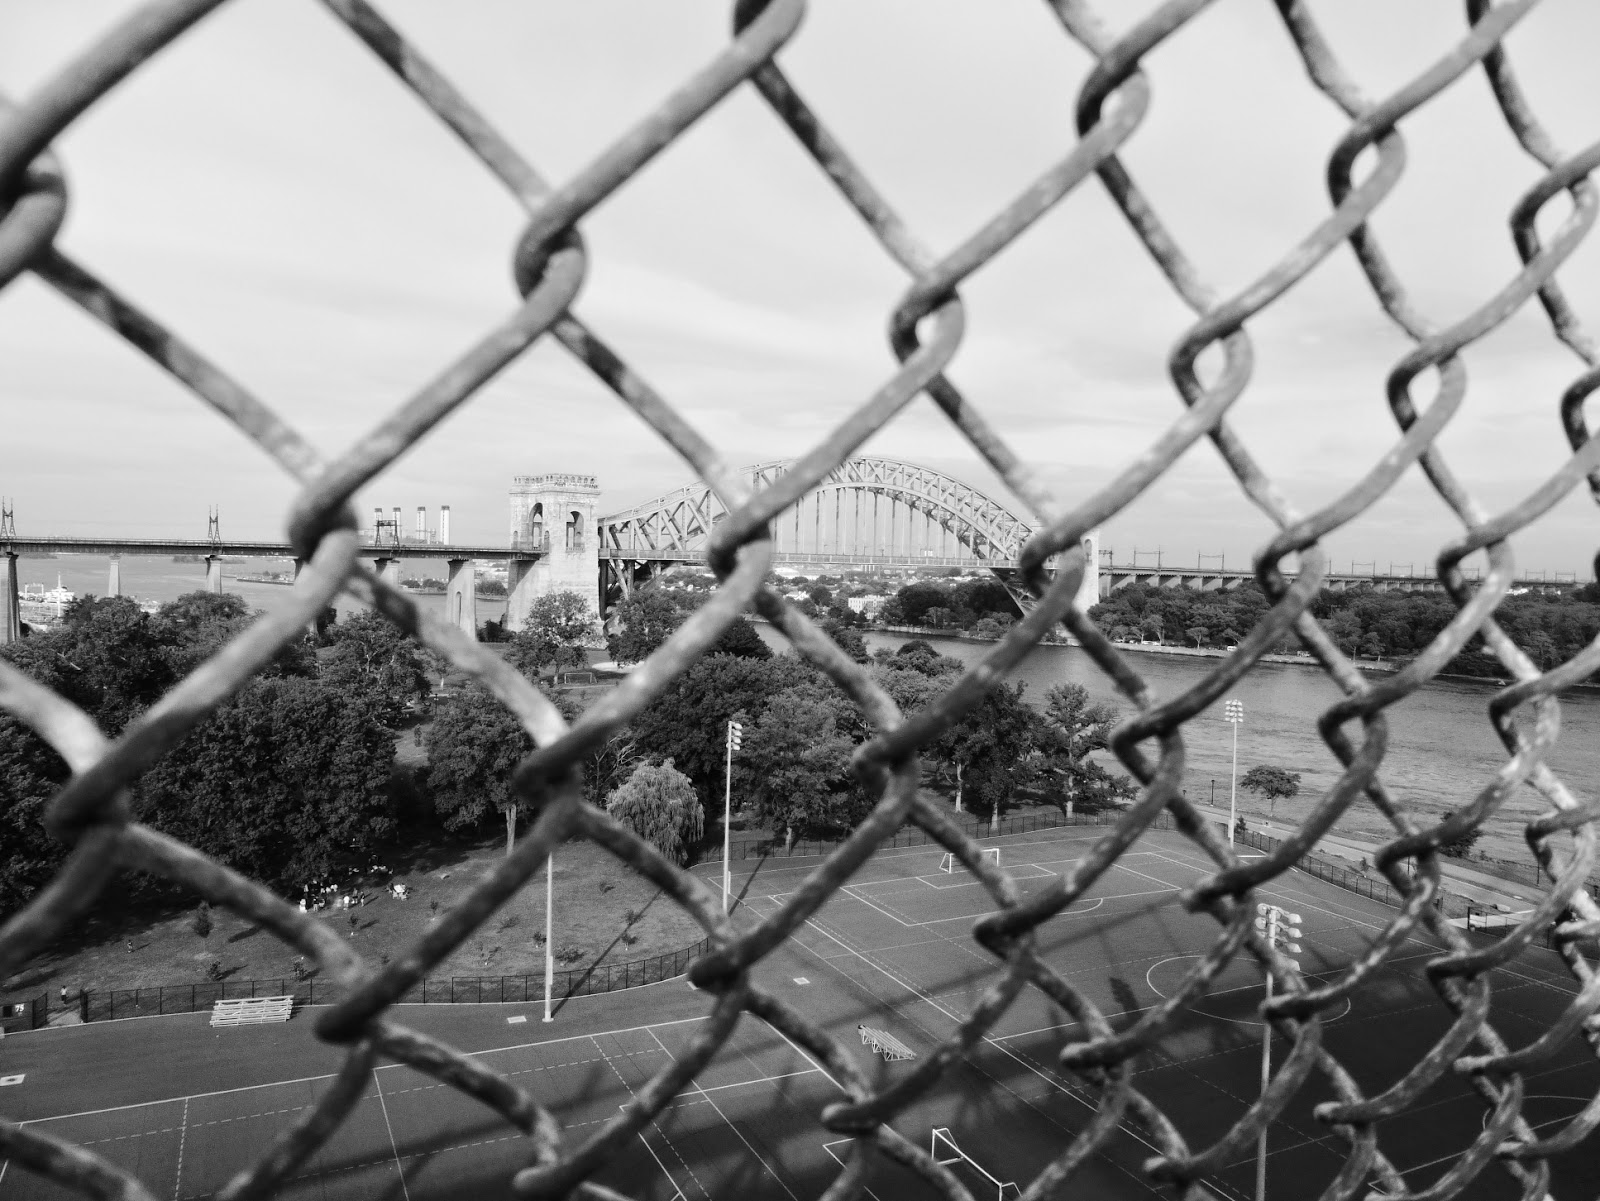 Walk on the RFK/Triborough Bridge